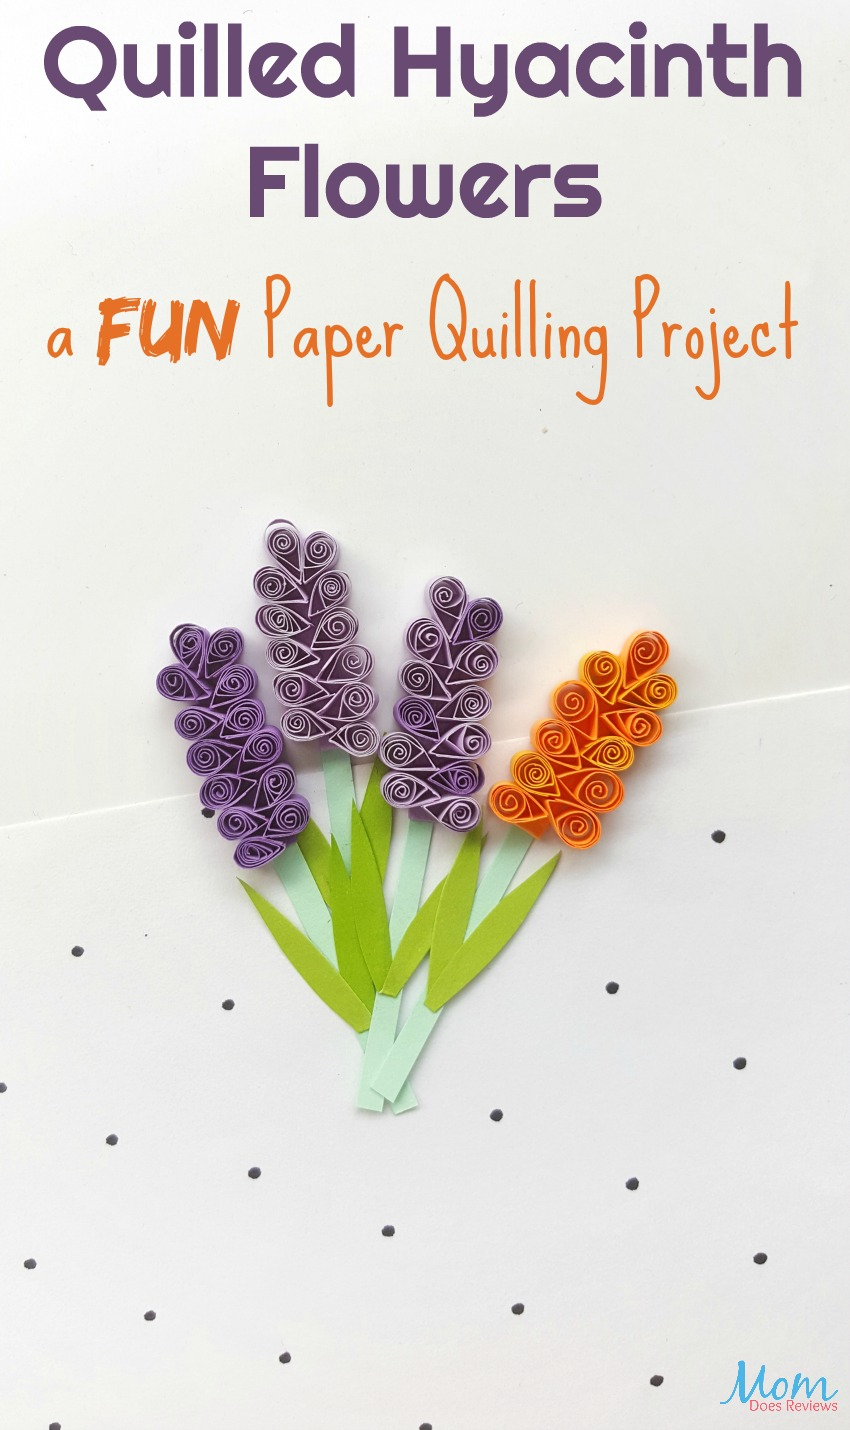 Quilled Hyacinth Flowers: a FUN Paper Quilling Project #craft #diy #flowers #papercraft